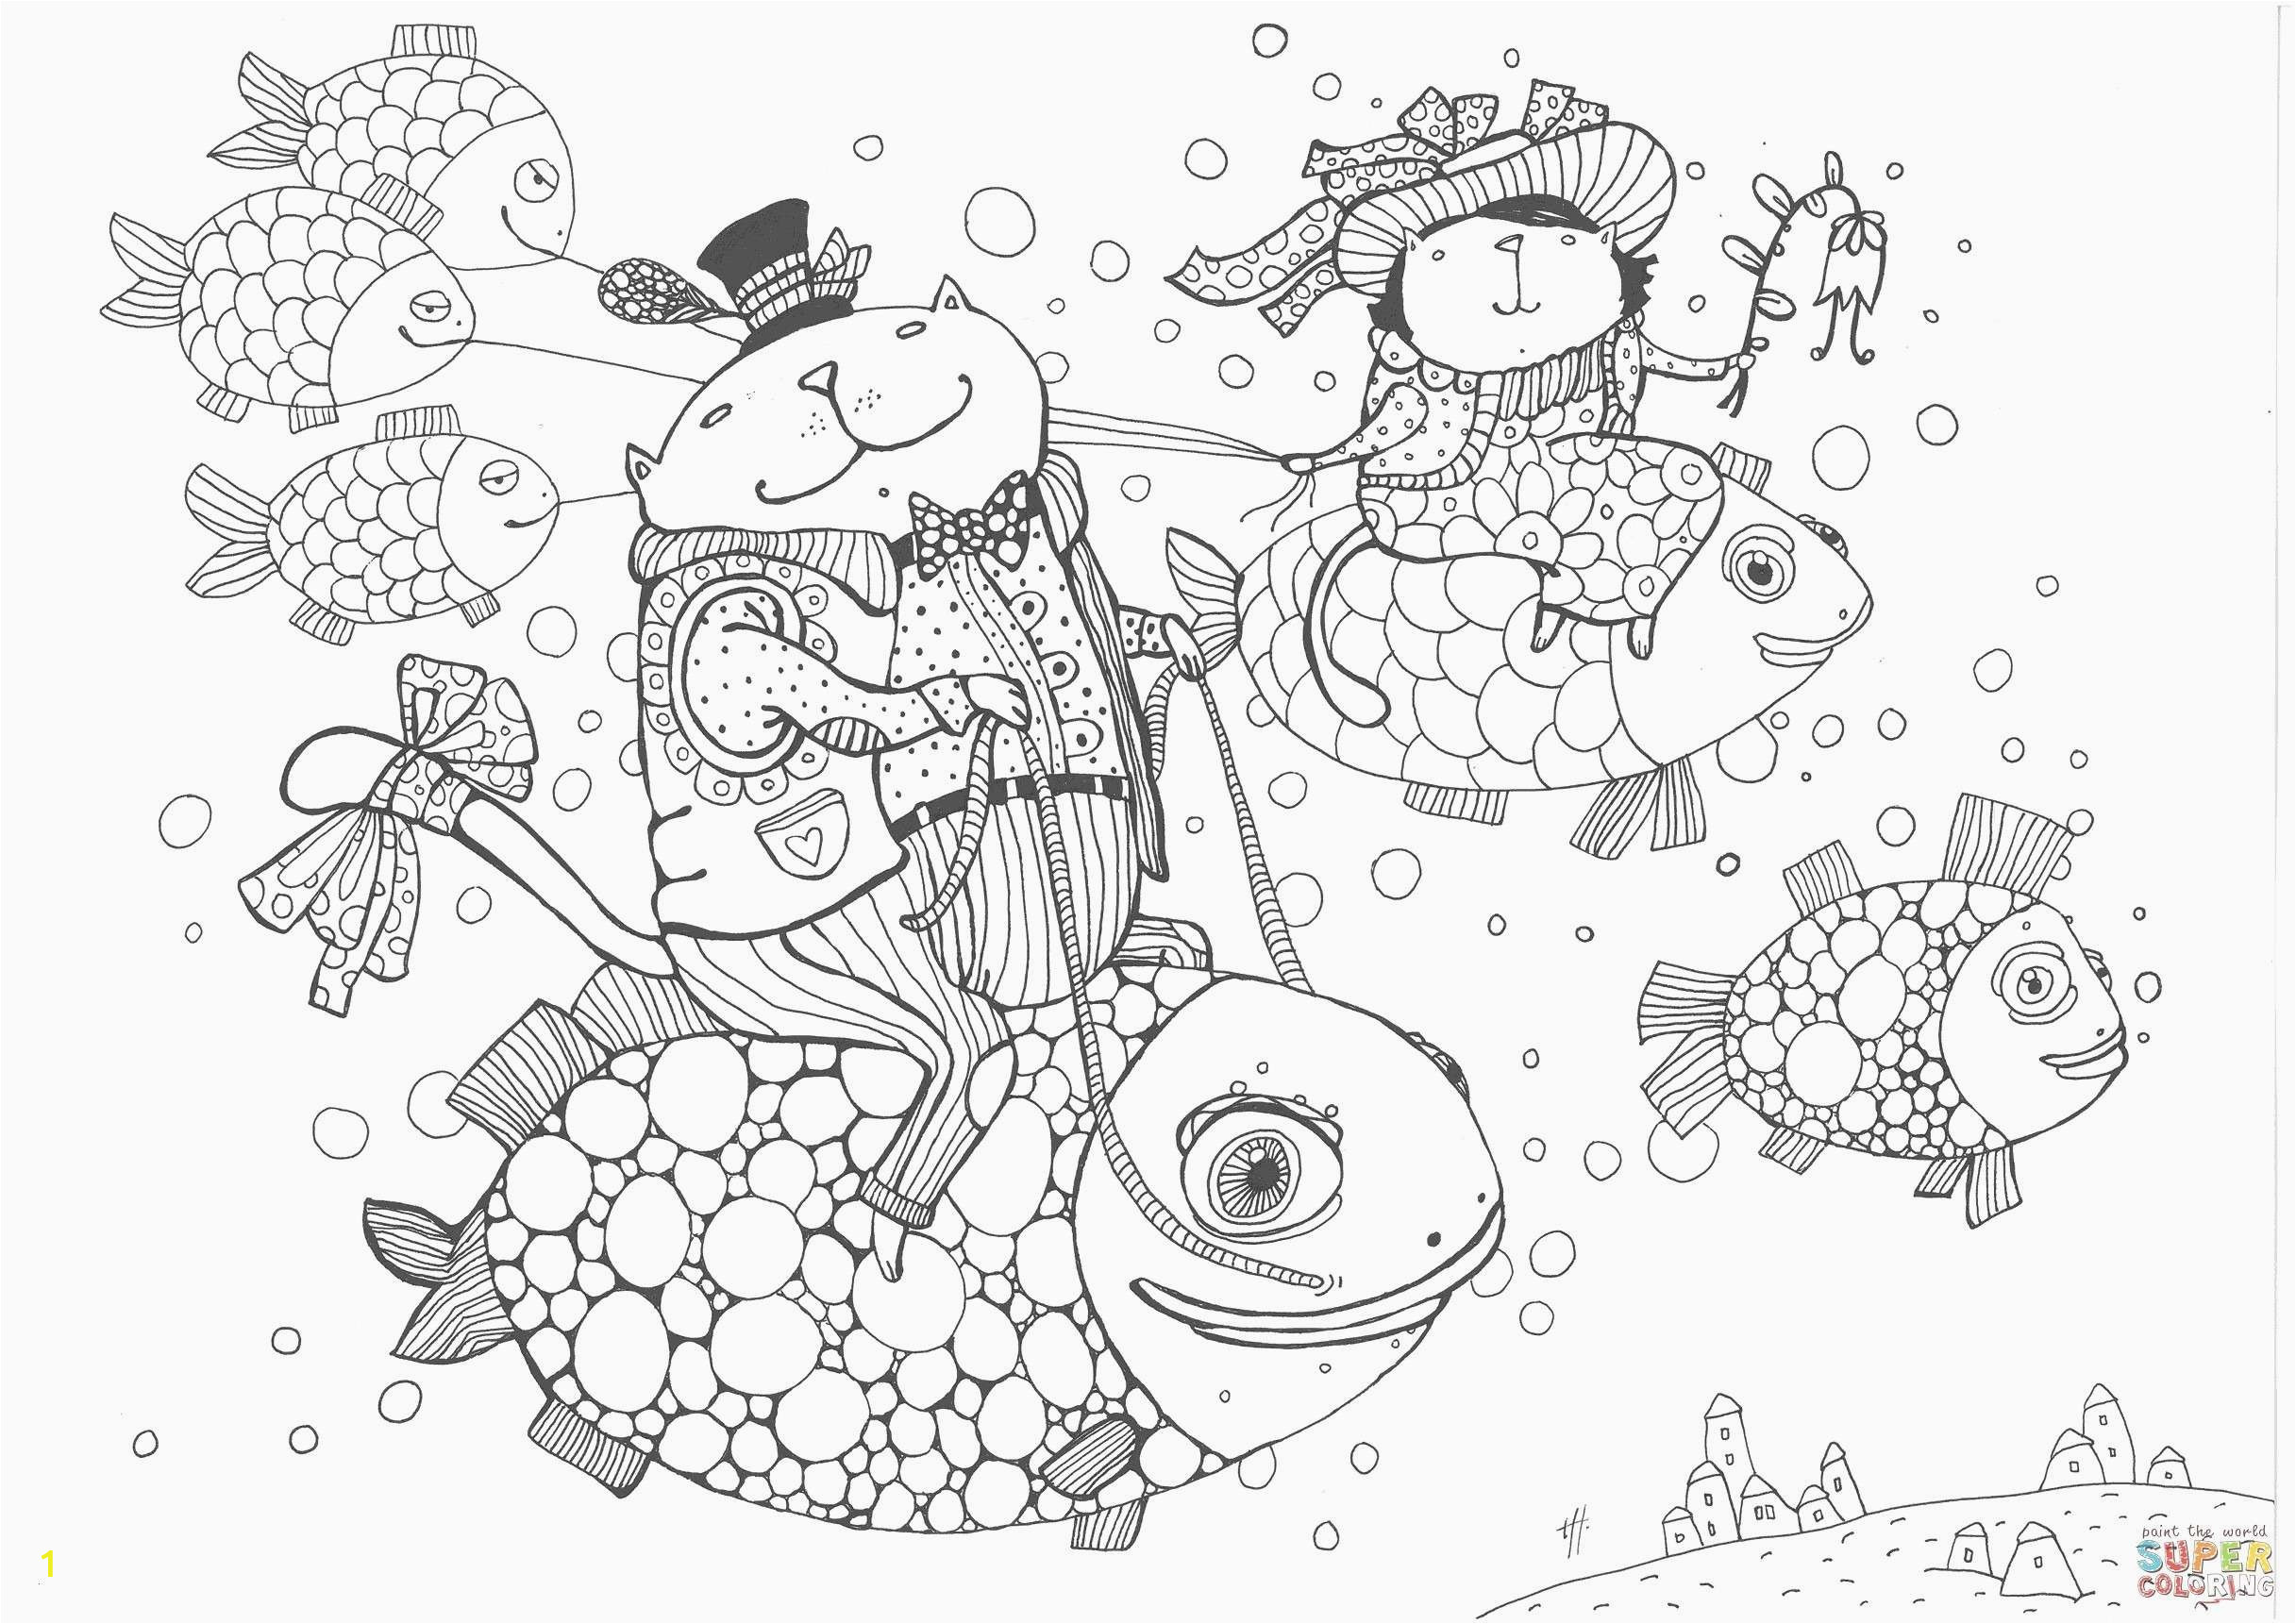 top killer free veggie tales coloring unique christmas color to print colouring books in tremendous stocking printable flower sheets lightning mcqueen fruits drawing for paw